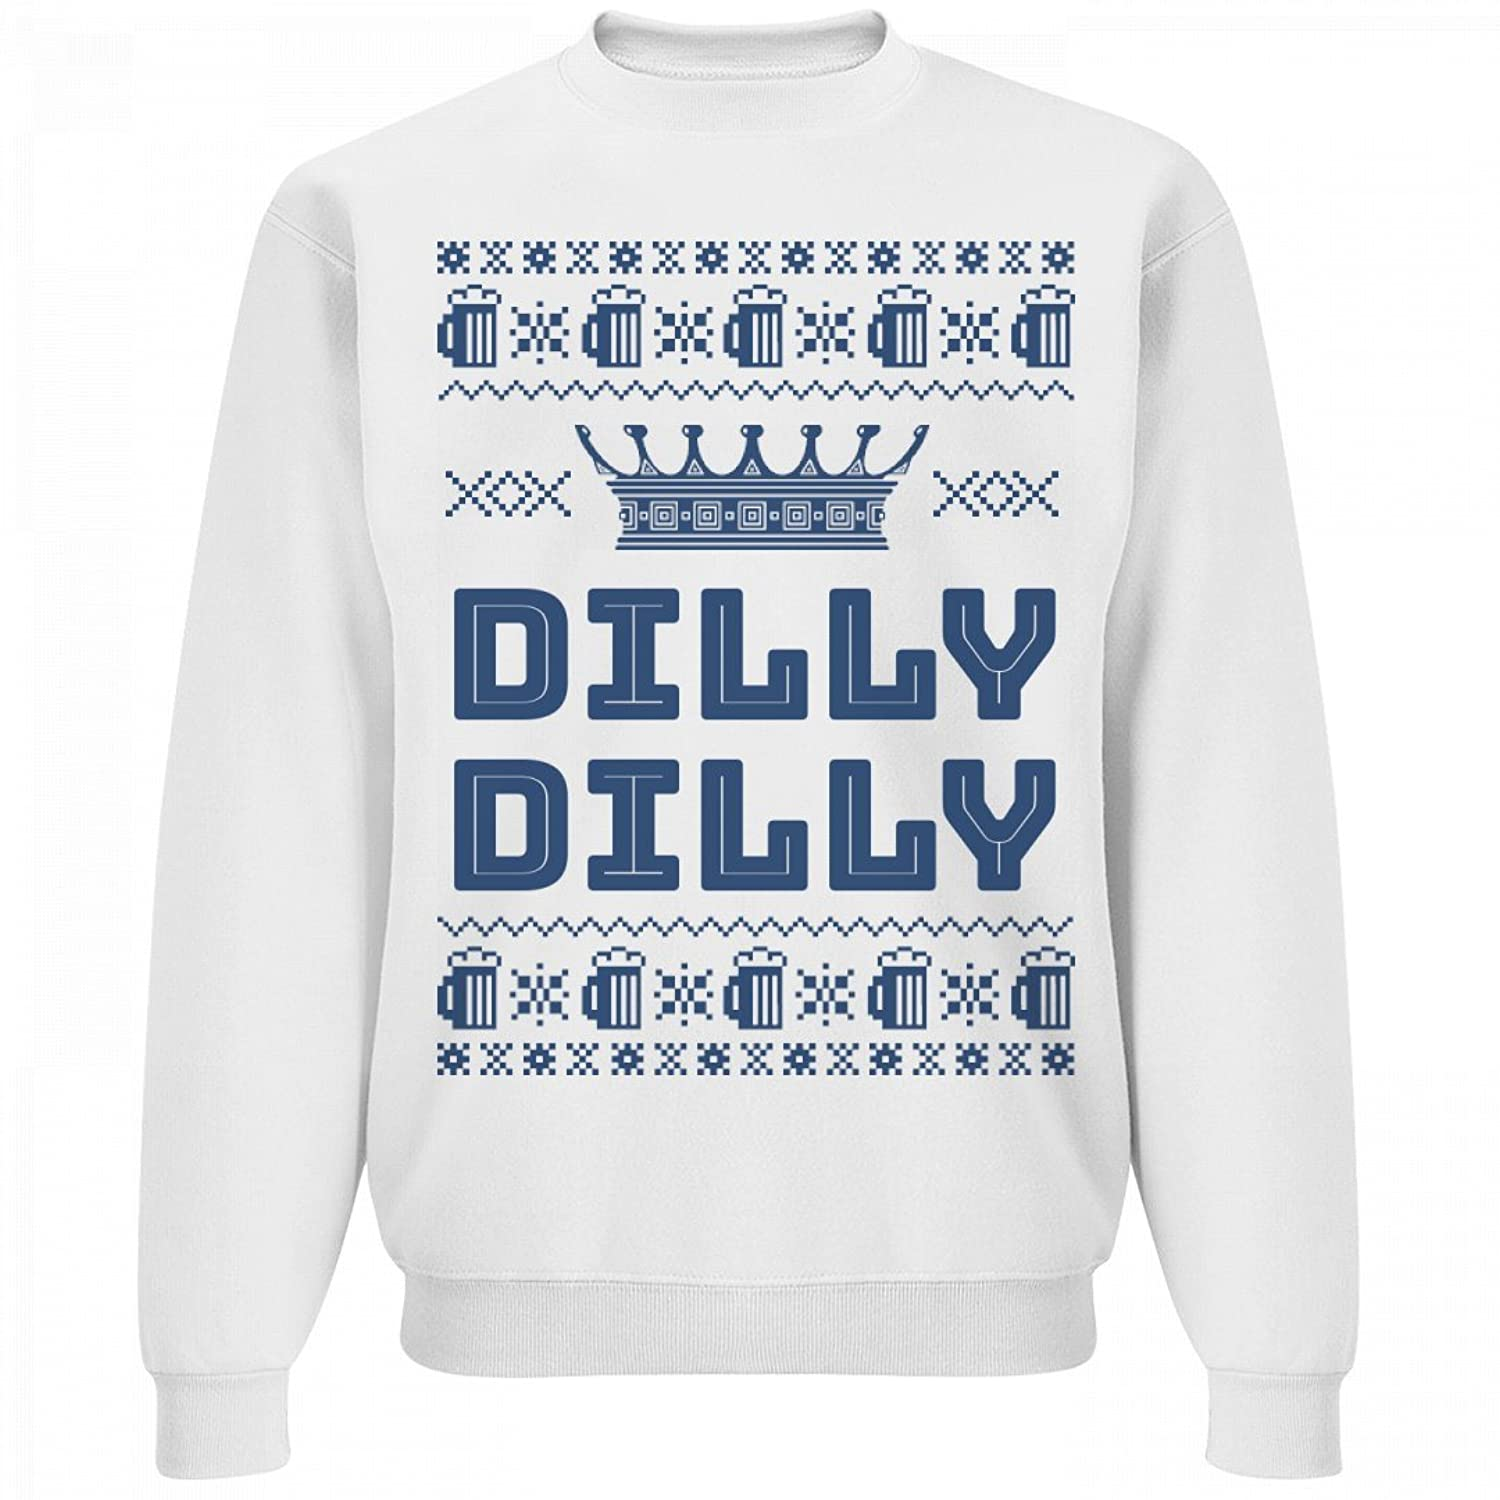 org dilly dilly christmas beer sweater unisex jerzees crewneck sweatshirt